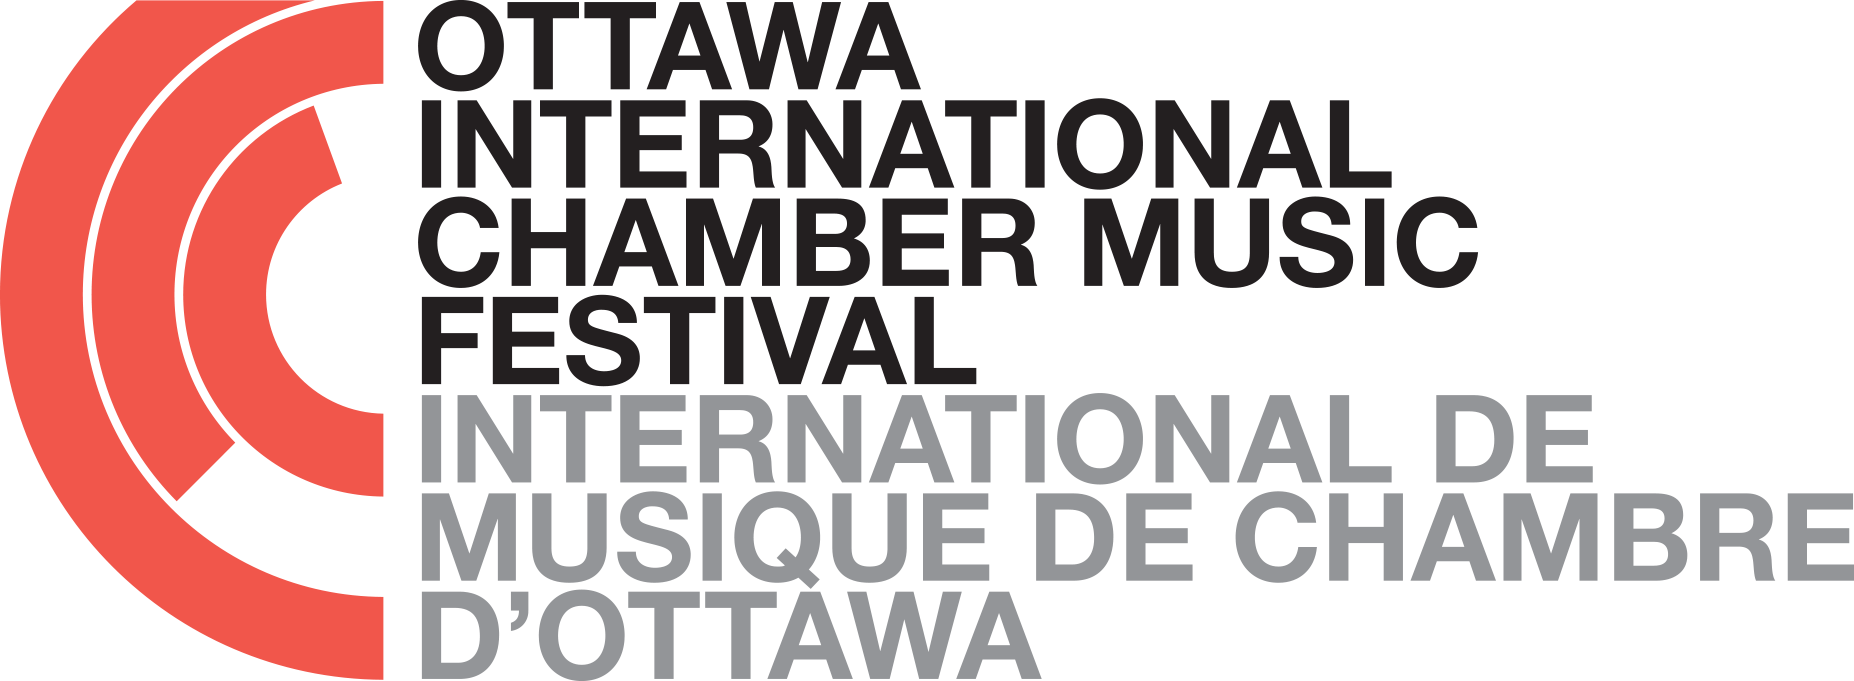 The World's Largest Chamber Music Festival